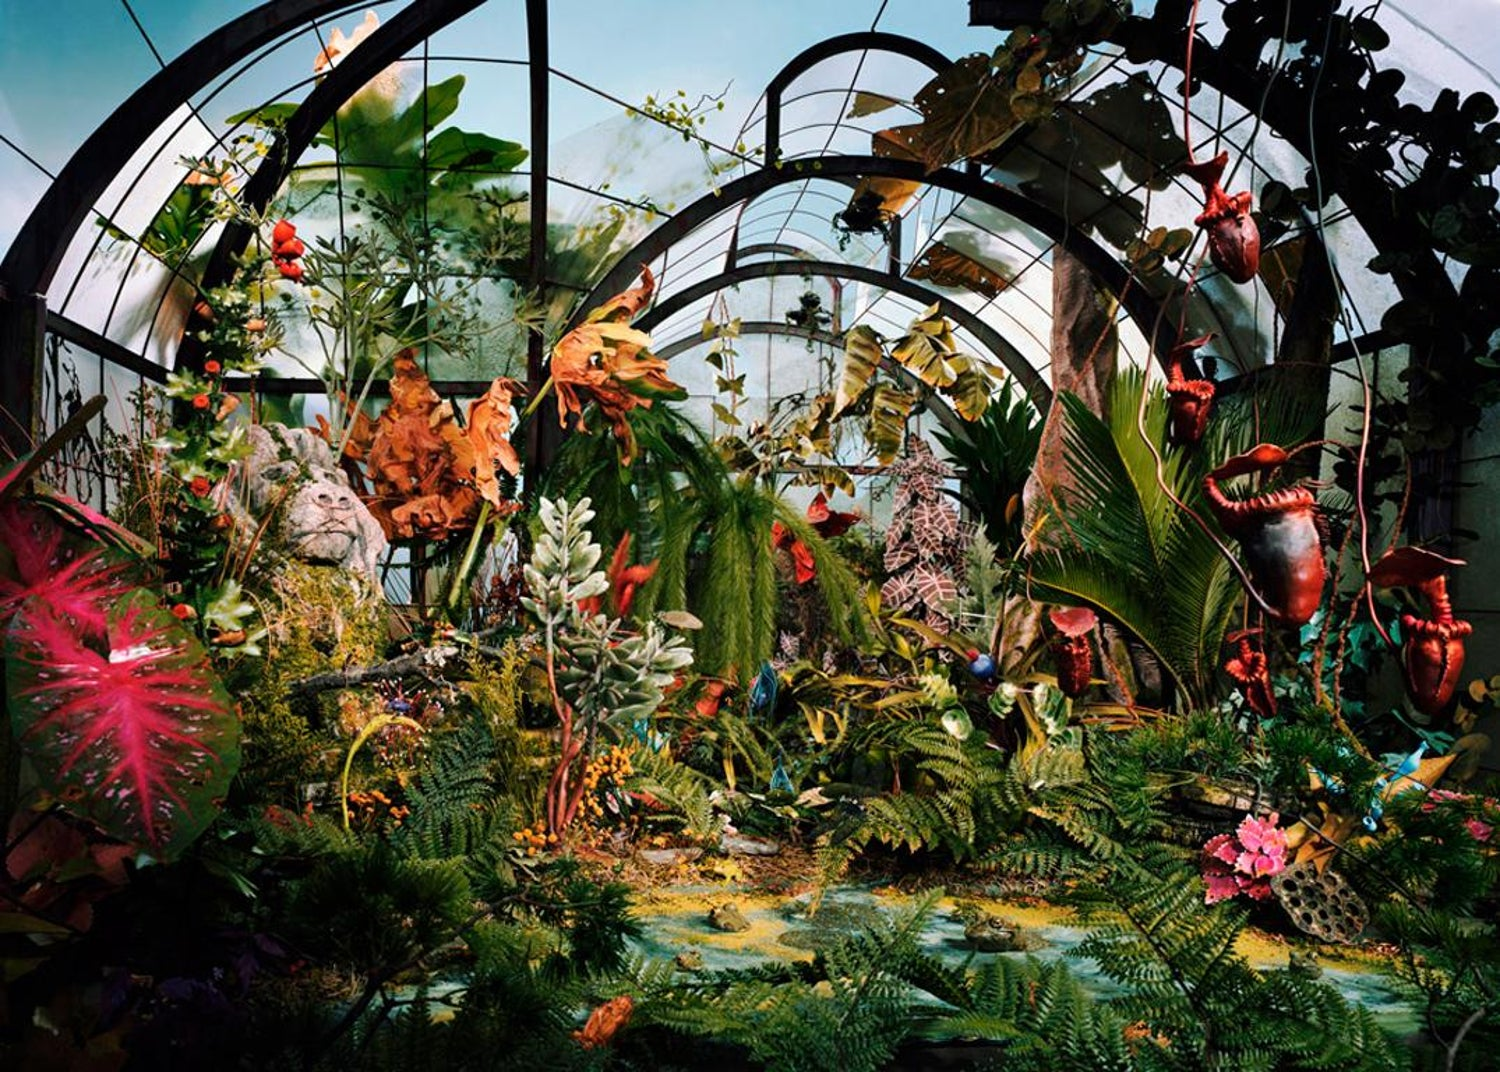 Lori Nix/Kathleen Gerber - Botanical Garden, Photograph: For Sale at ...